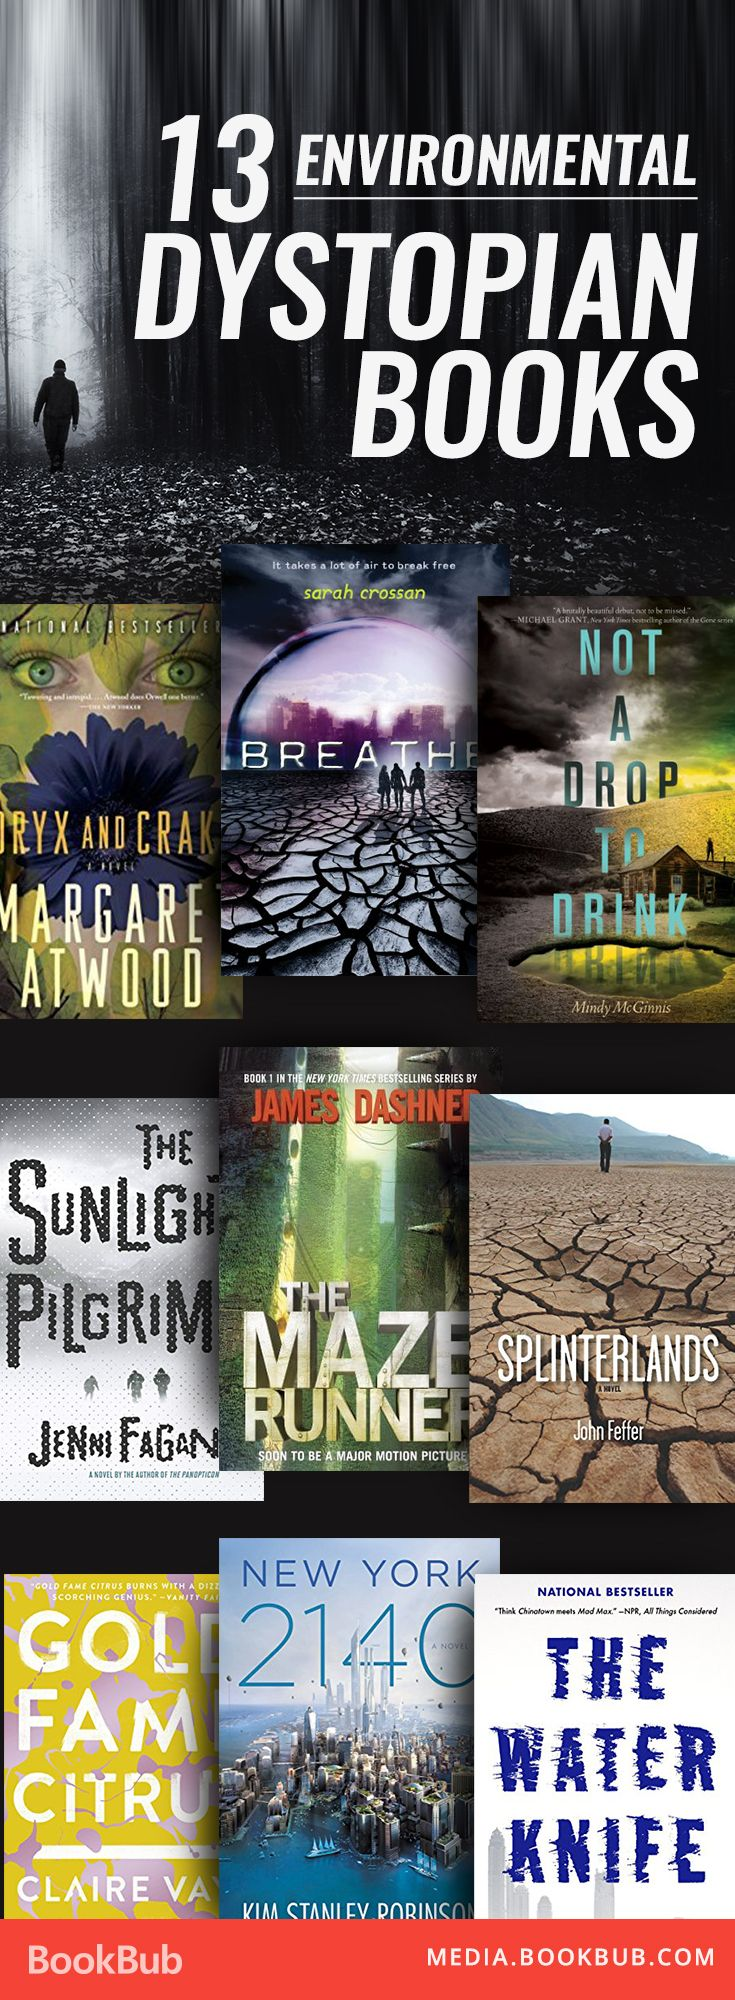 13 environmental dystopian books for teens and adults. Including a list of classic novels and recent fiction that would make great additions to your reading list!